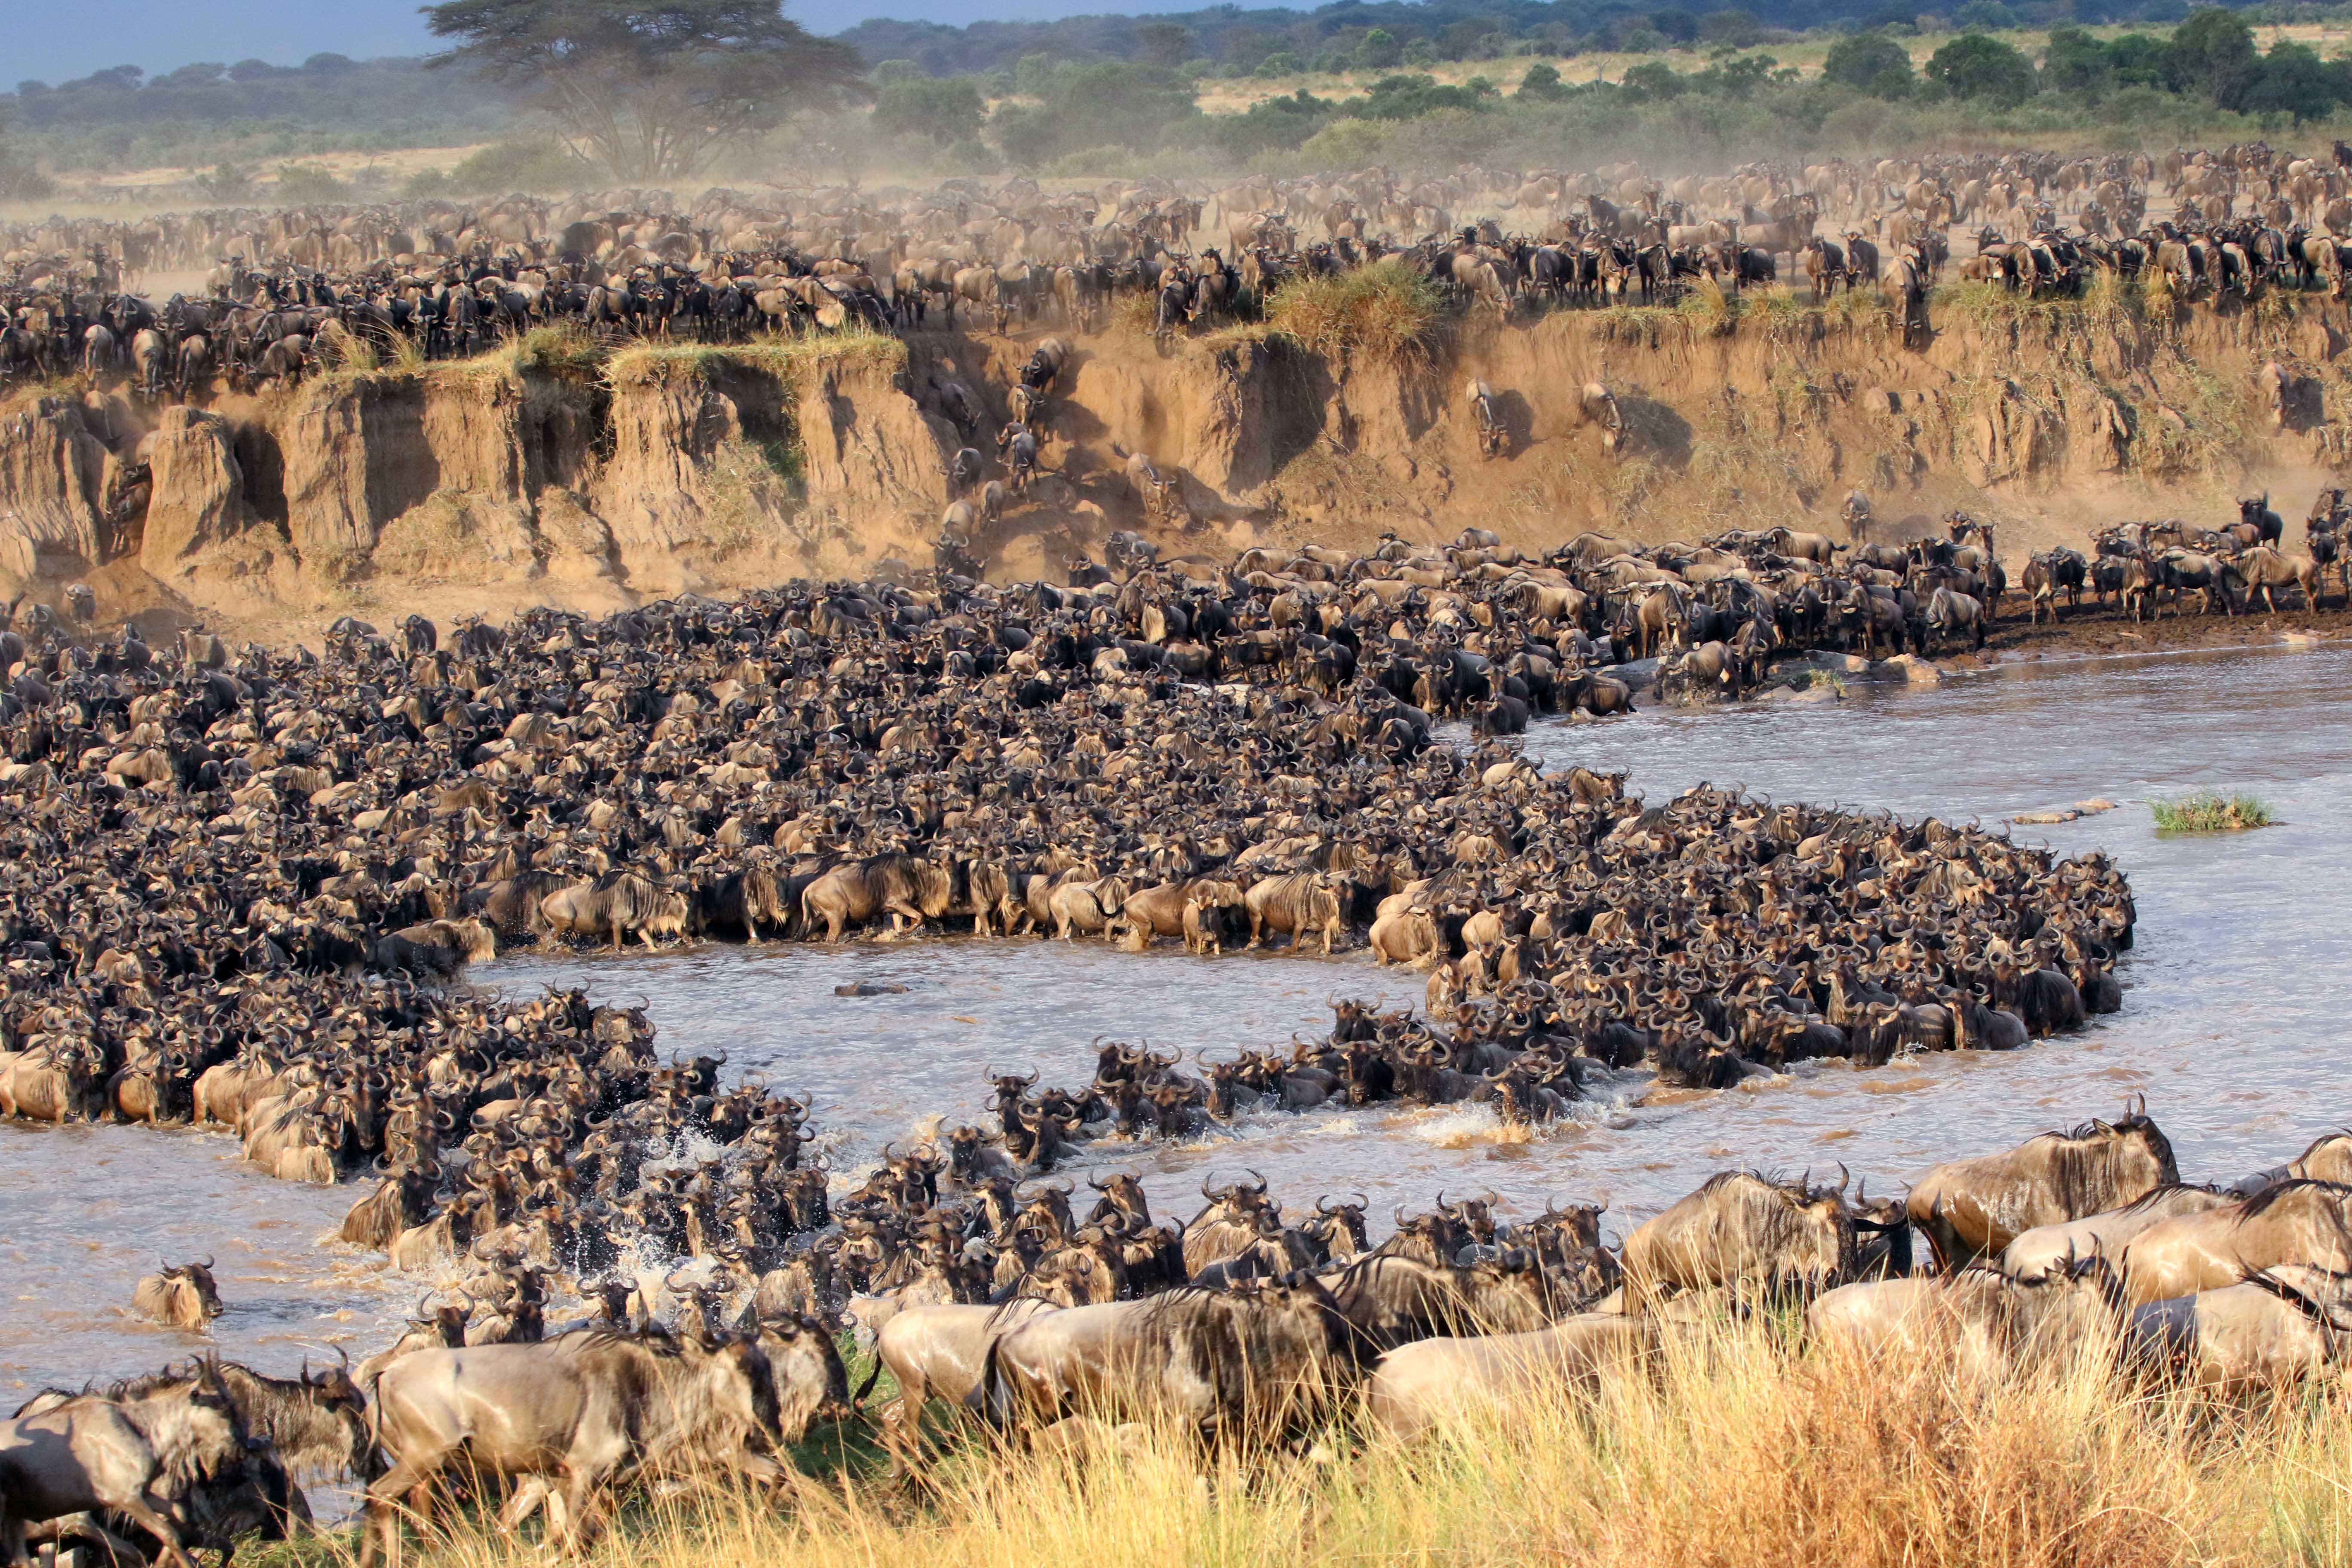 Thousands of wildebeest and zebra cross the river as predators wait patiently